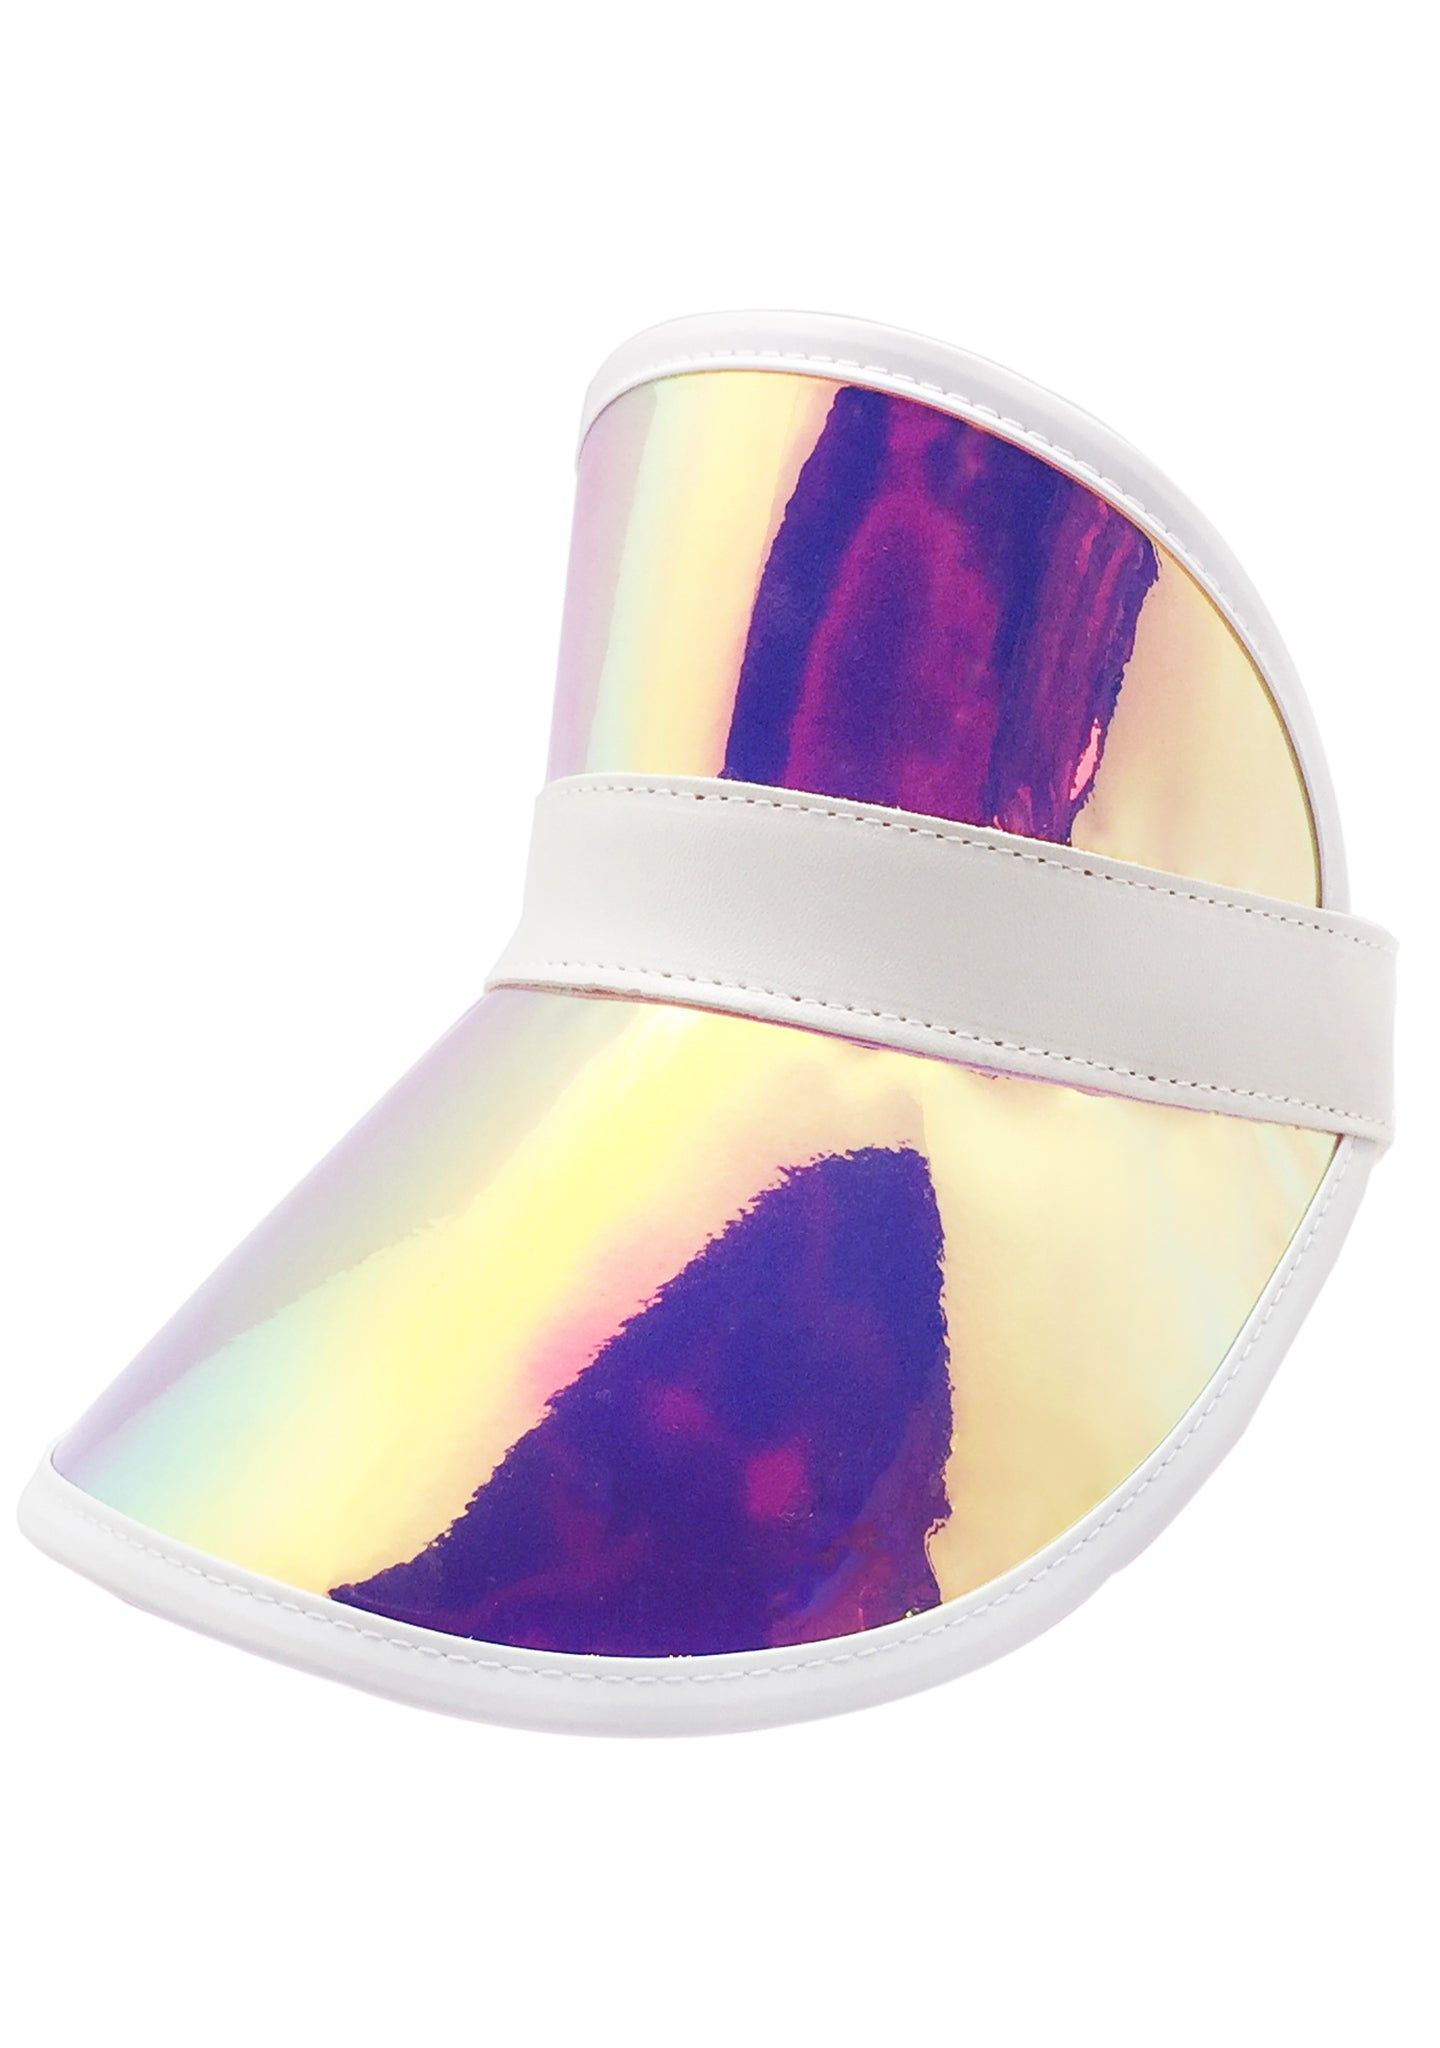 Prism Princess retroElectric Visor in Pink